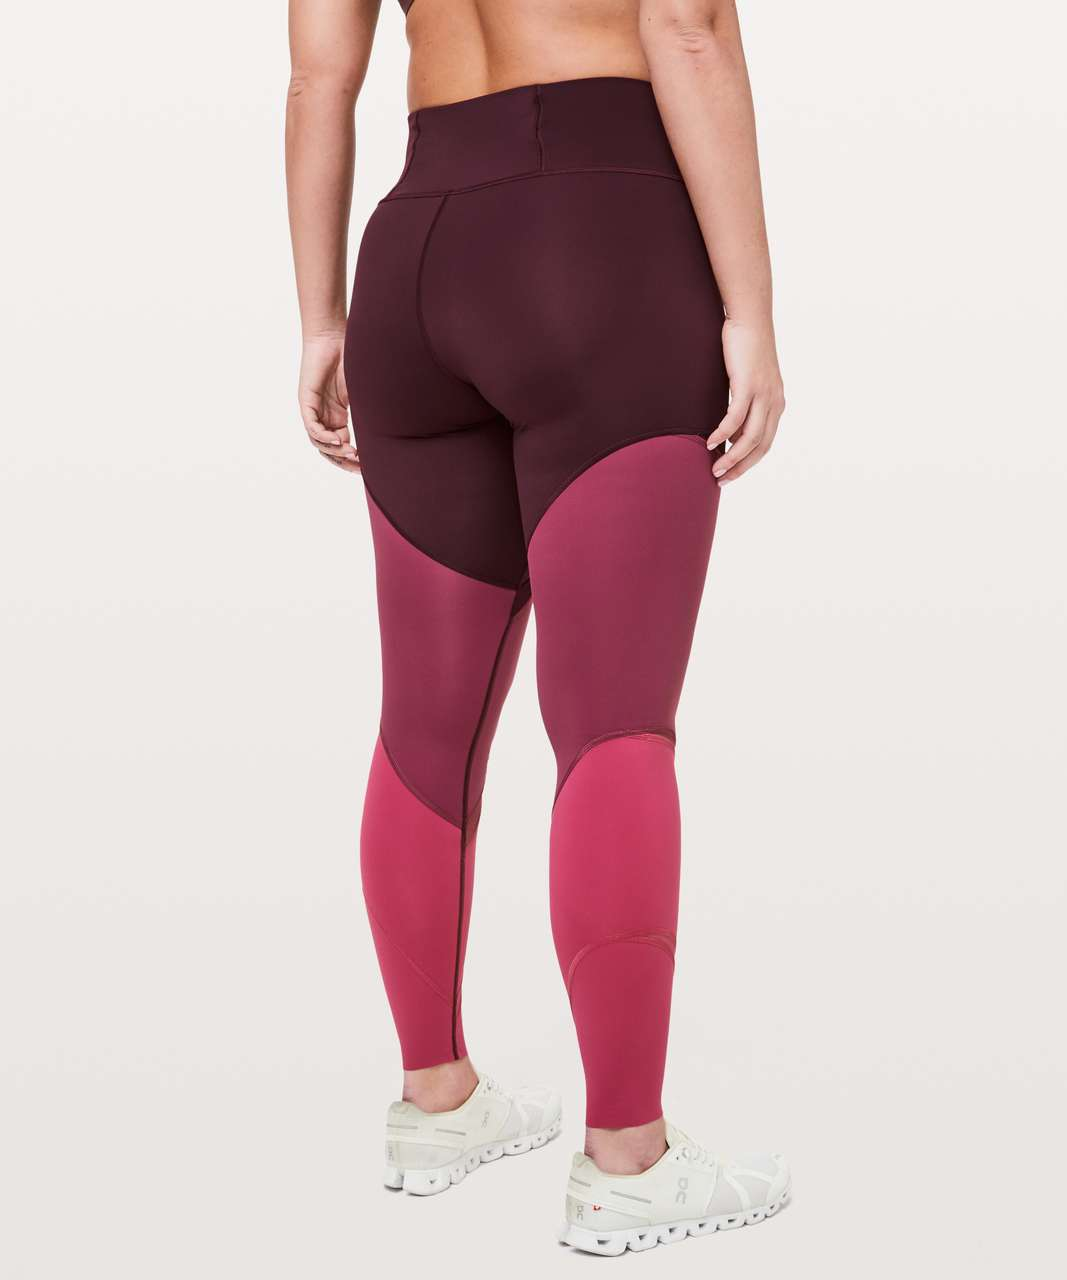 "Lululemon Colour Me Ombre Tight *28"" - Dark Adobe / Blush Berry / Violet Red"